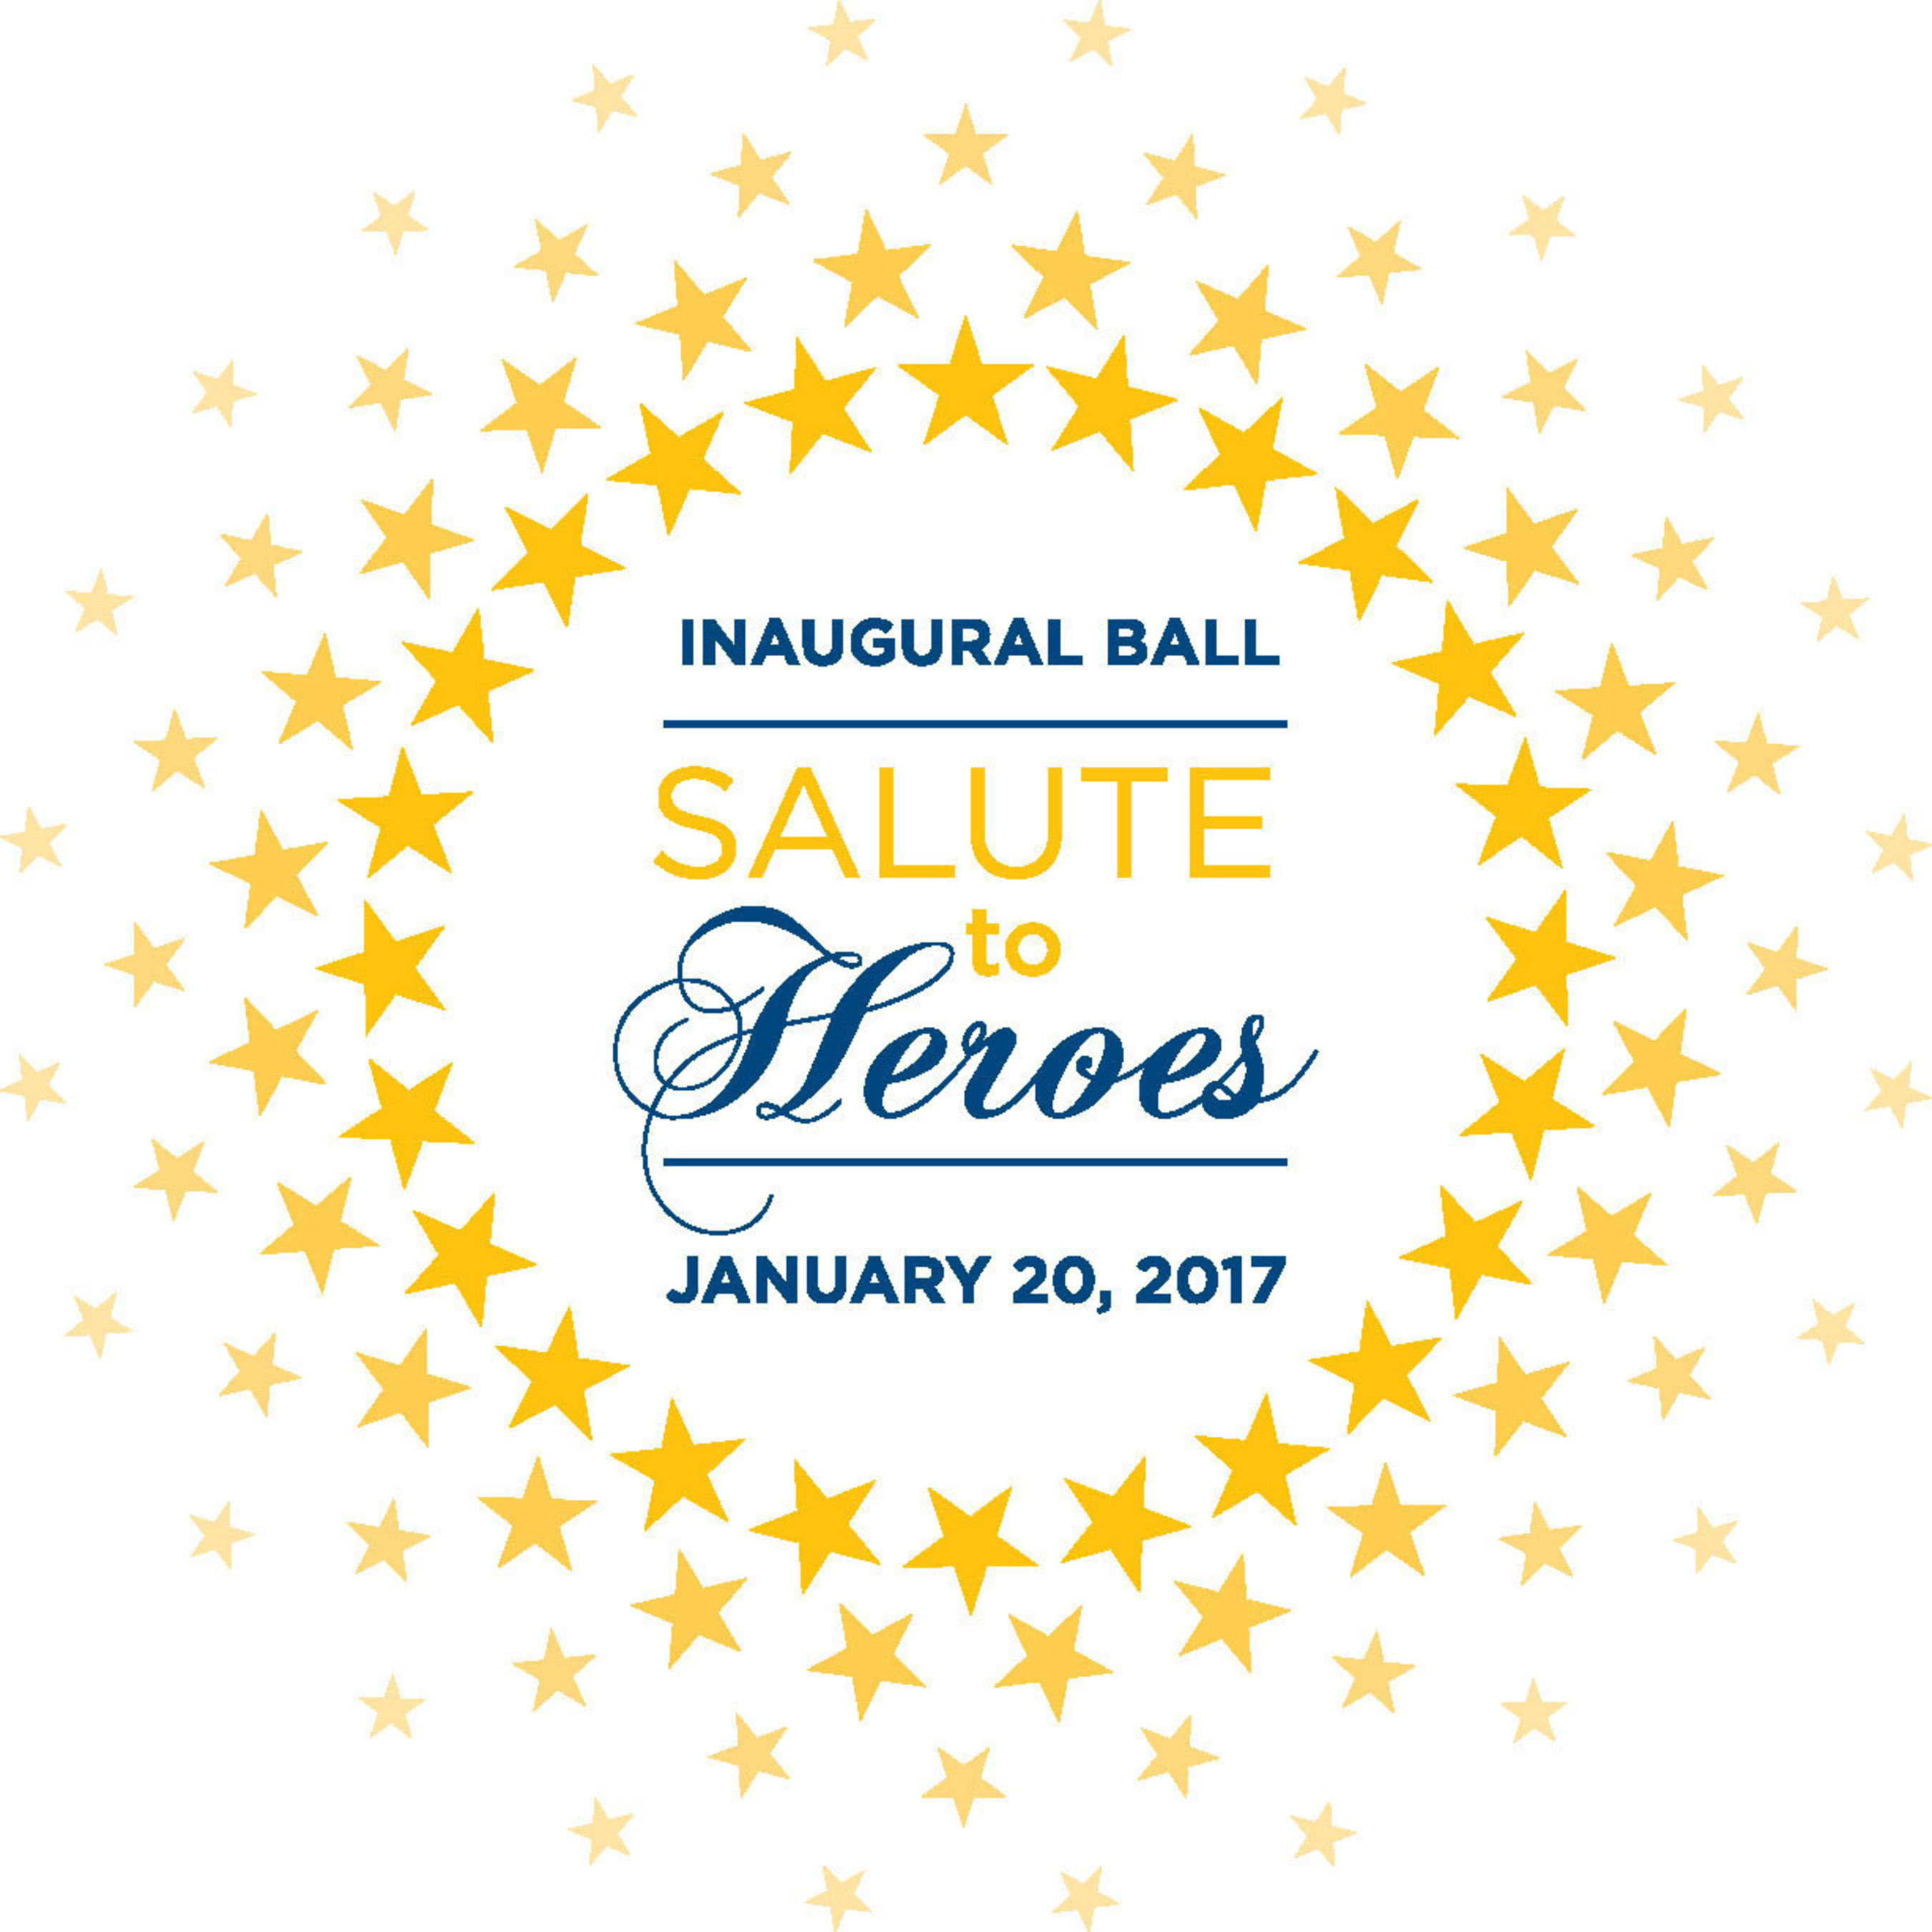 The American Legion and the Veterans Inaugural Committee announce plans for the Salute to Heroes Inaugural Ball on January 20, 2017. Since the inauguration of 1953, the event has provided the newly elected Commander-in-Chief the opportunity to join the veteran community to pay tribute to Medal of Honor recipients. For more information go to www.legion.org/salutetoheroesball